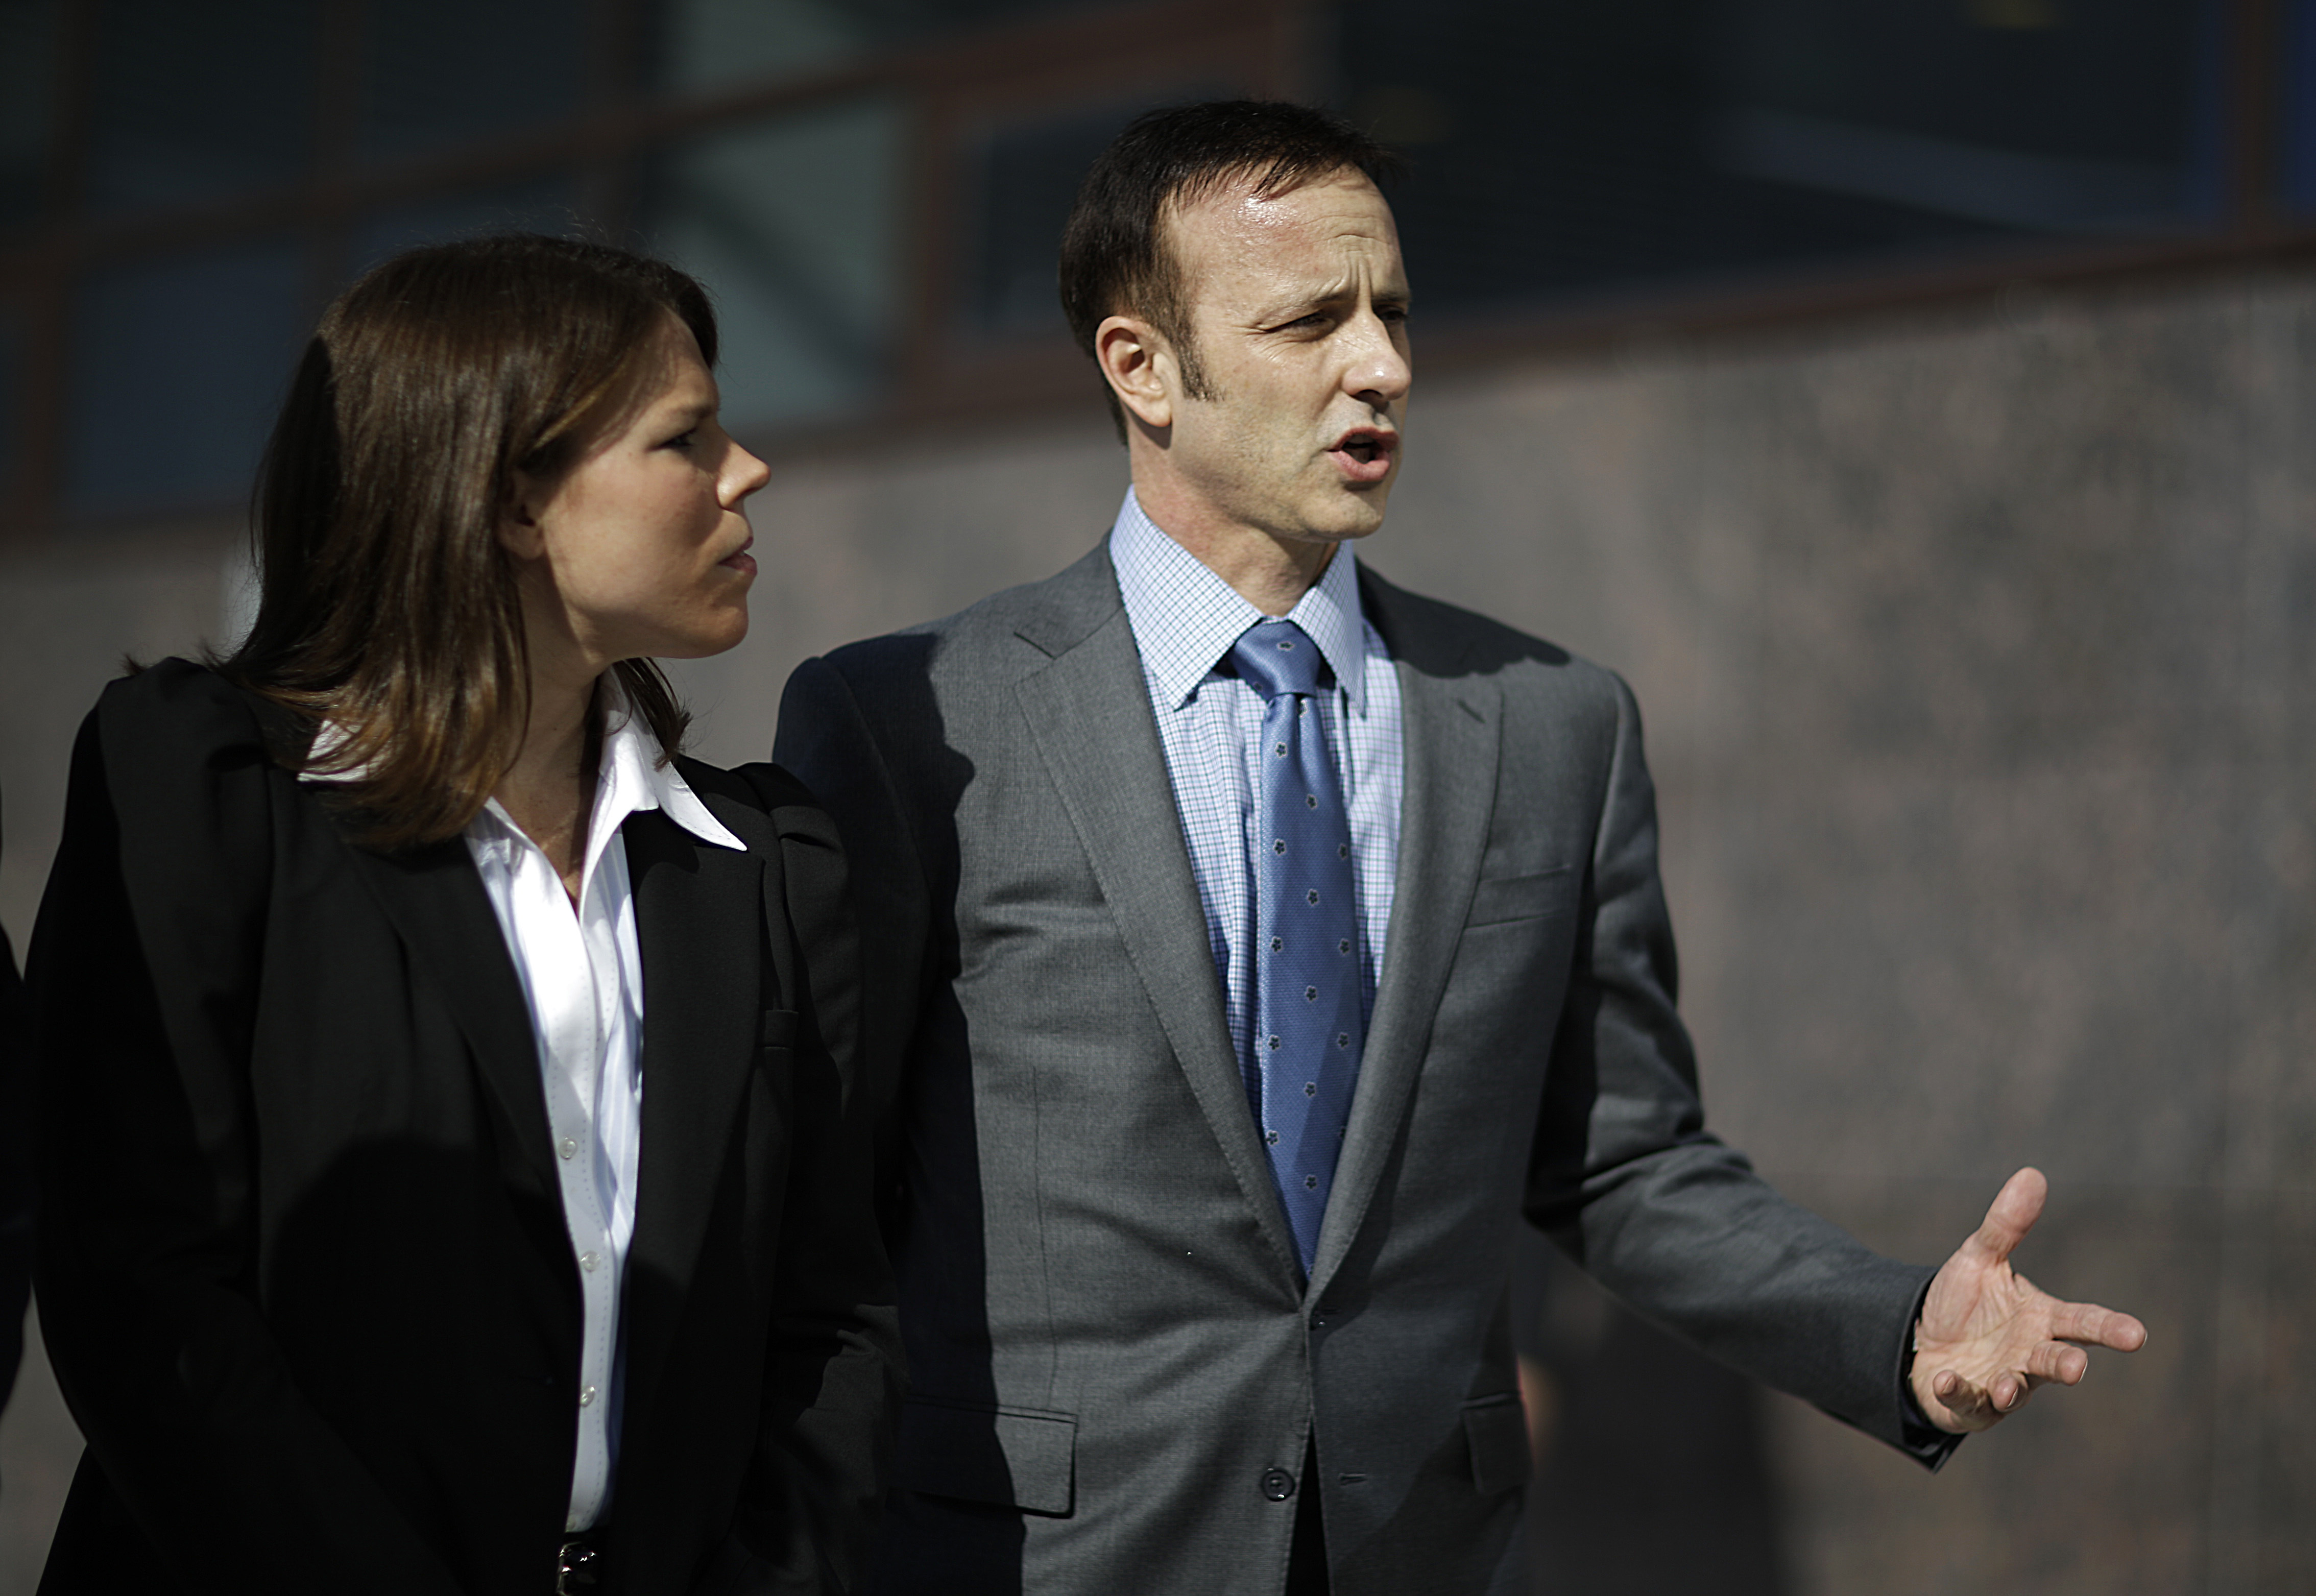 Olympic gold medal figure skater Brian Boitano, right, speaks during a news conference with fellow member of the U.S. delegation, former United States hockey player Caitlin Cahow, ahead of the opening ceremony at the 2014 Winter Olympics, Friday, Feb. 7, 2014, in Sochi, Russia. (AP Photo/David Goldman)